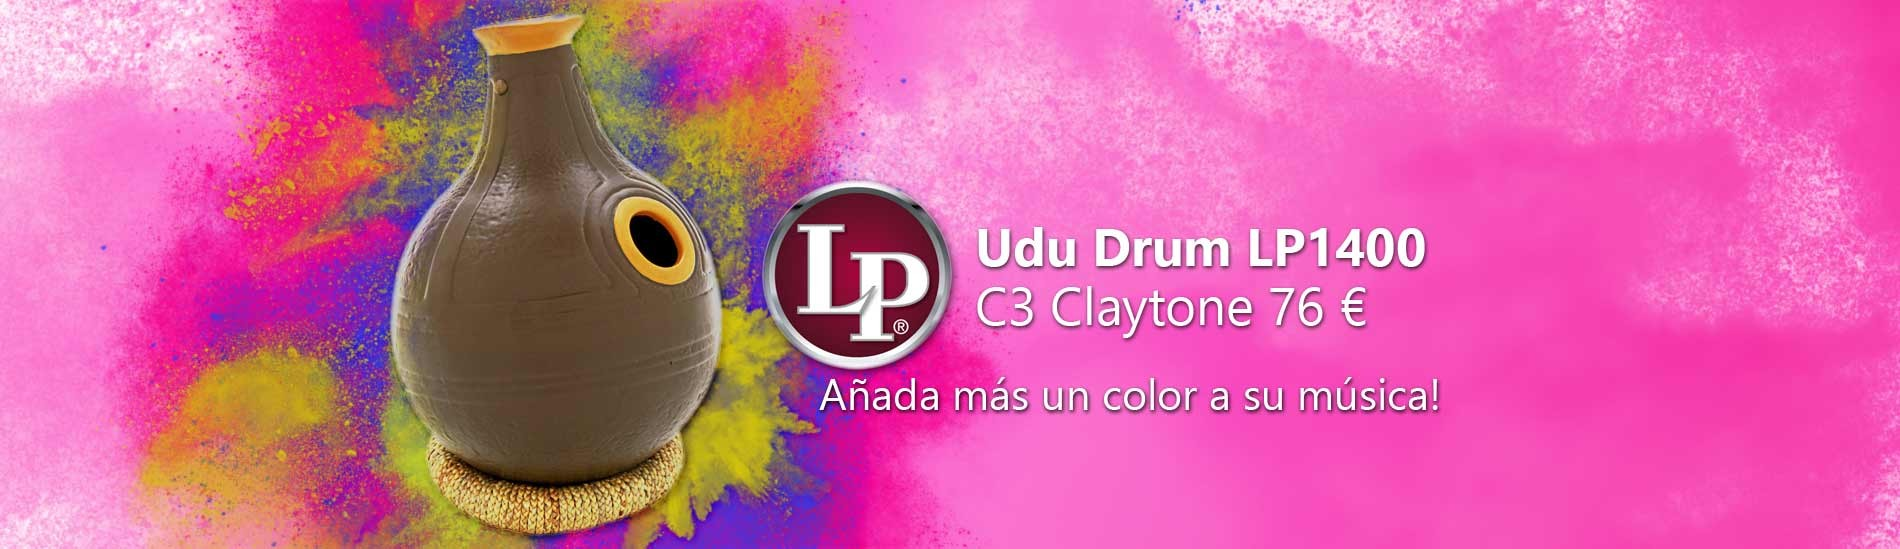 Udu Drum LP LP1400 C3 Claytone